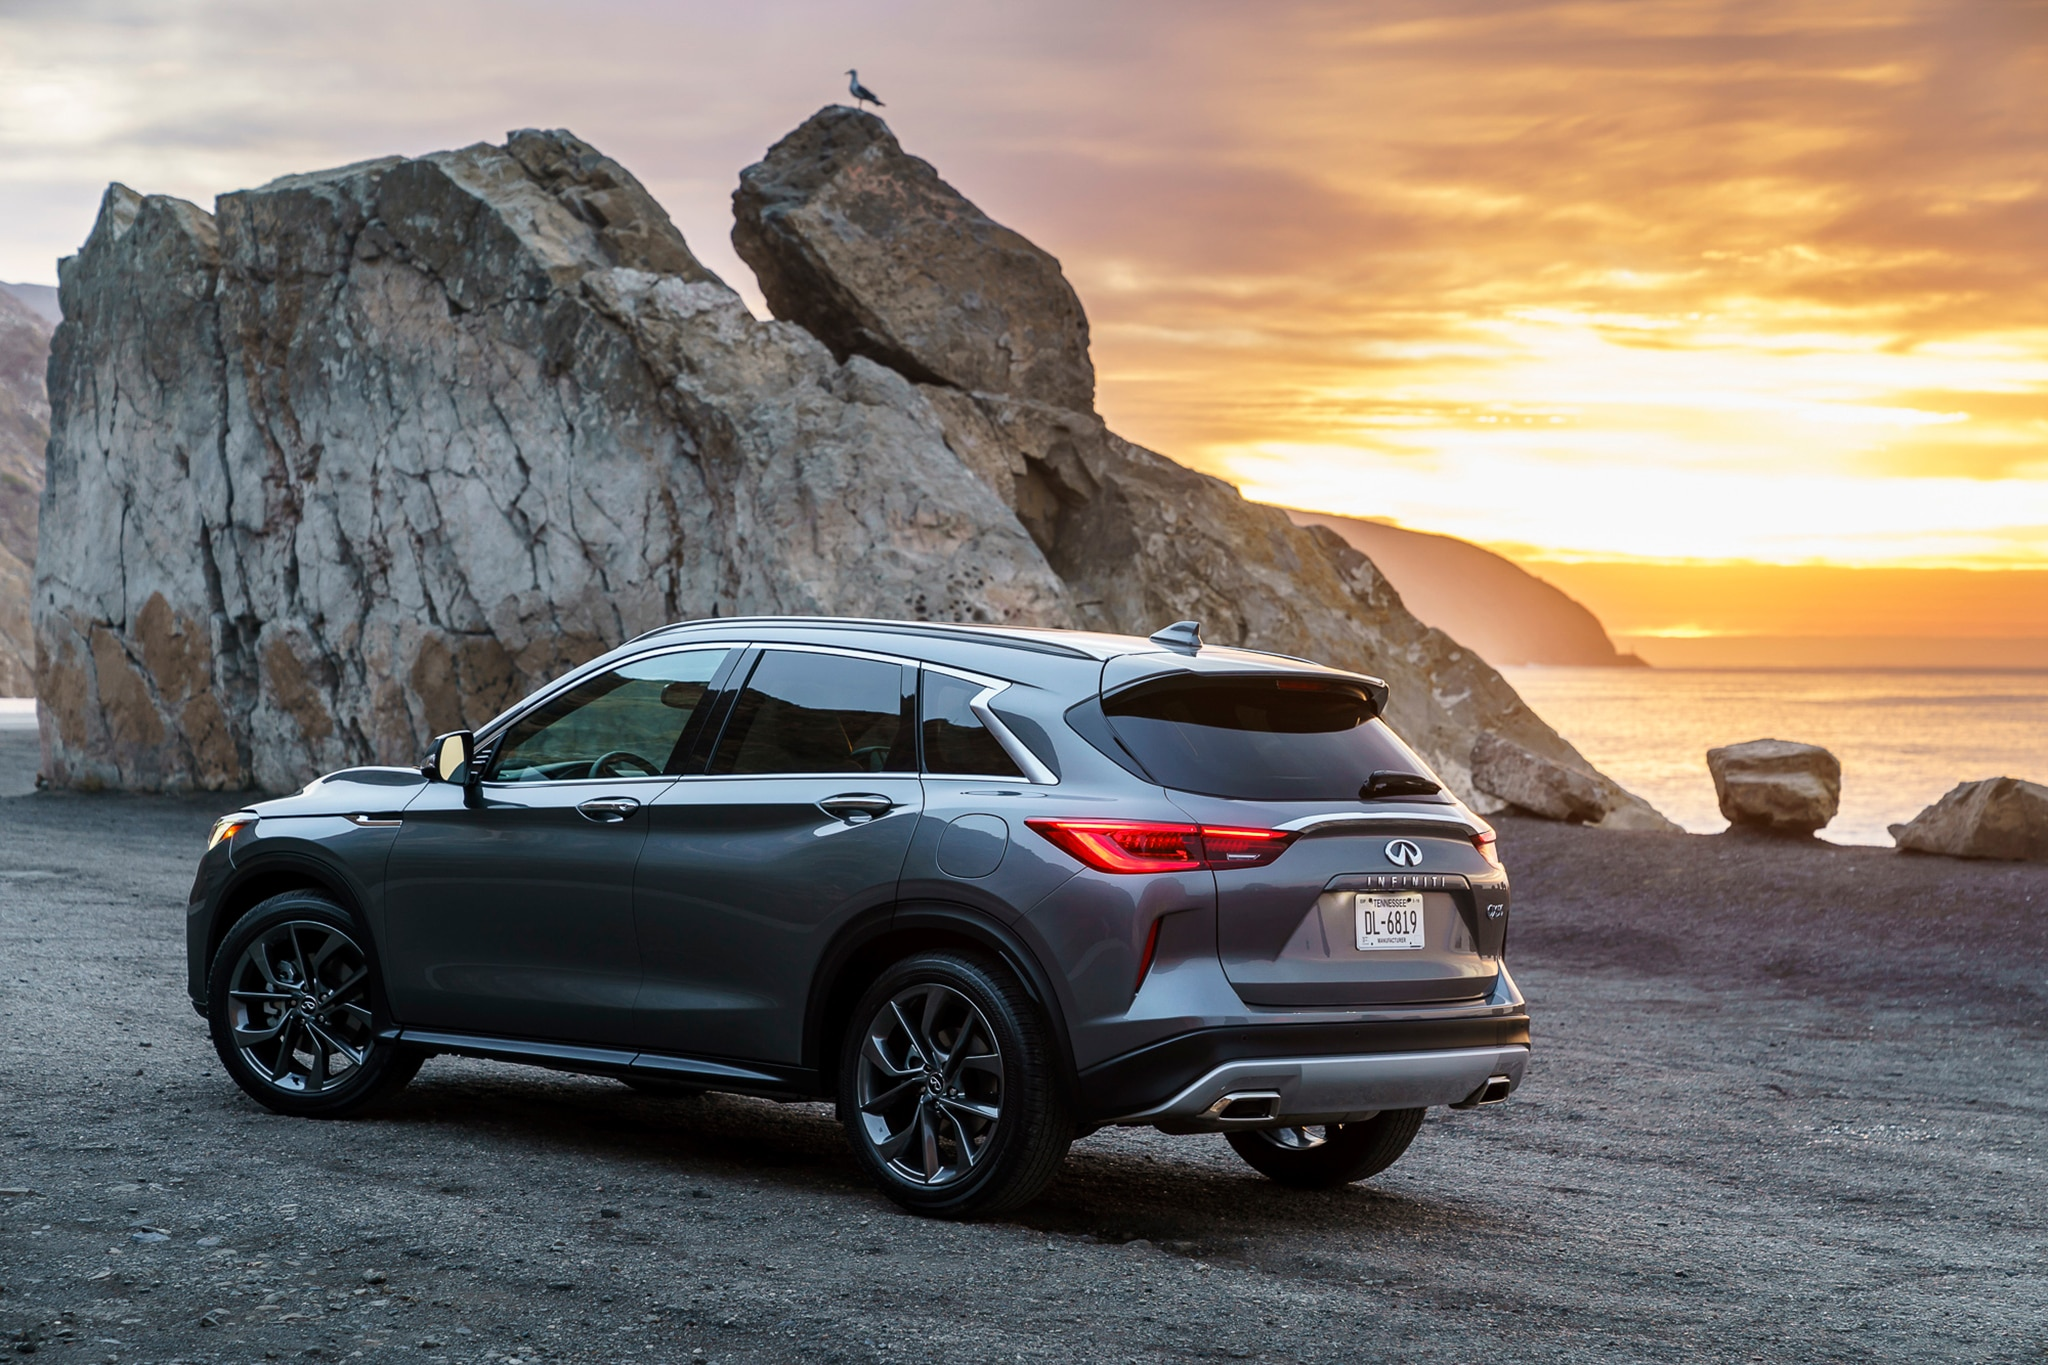 2019 infiniti qx50 revealed ahead of 2017 los angeles auto show automobile magazine. Black Bedroom Furniture Sets. Home Design Ideas